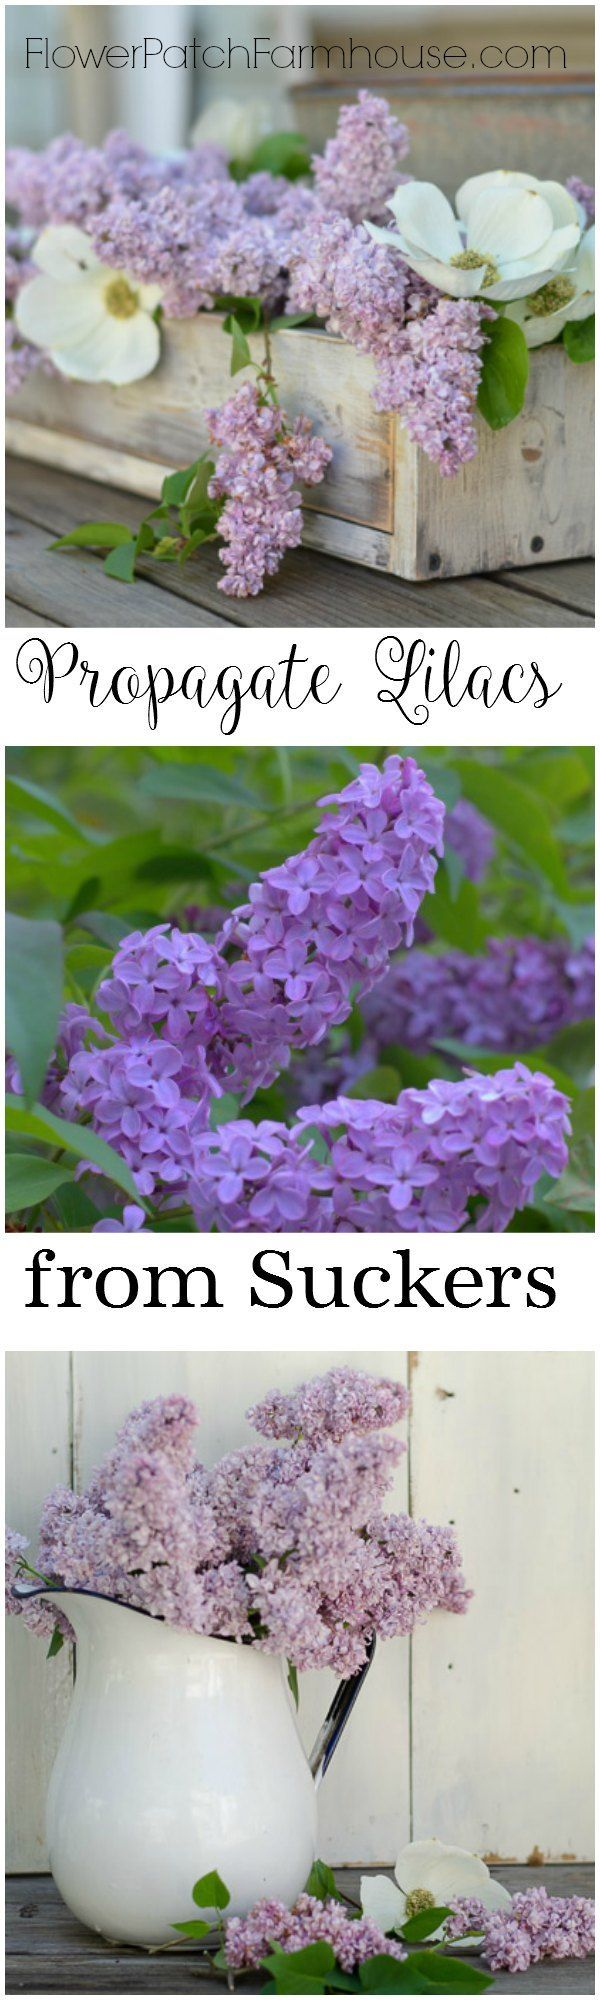 Top 25 best bush with purple flowers ideas on pinterest bush a favorite spring flower is the lilac these perennial bushes which can grow to tree dhlflorist Choice Image